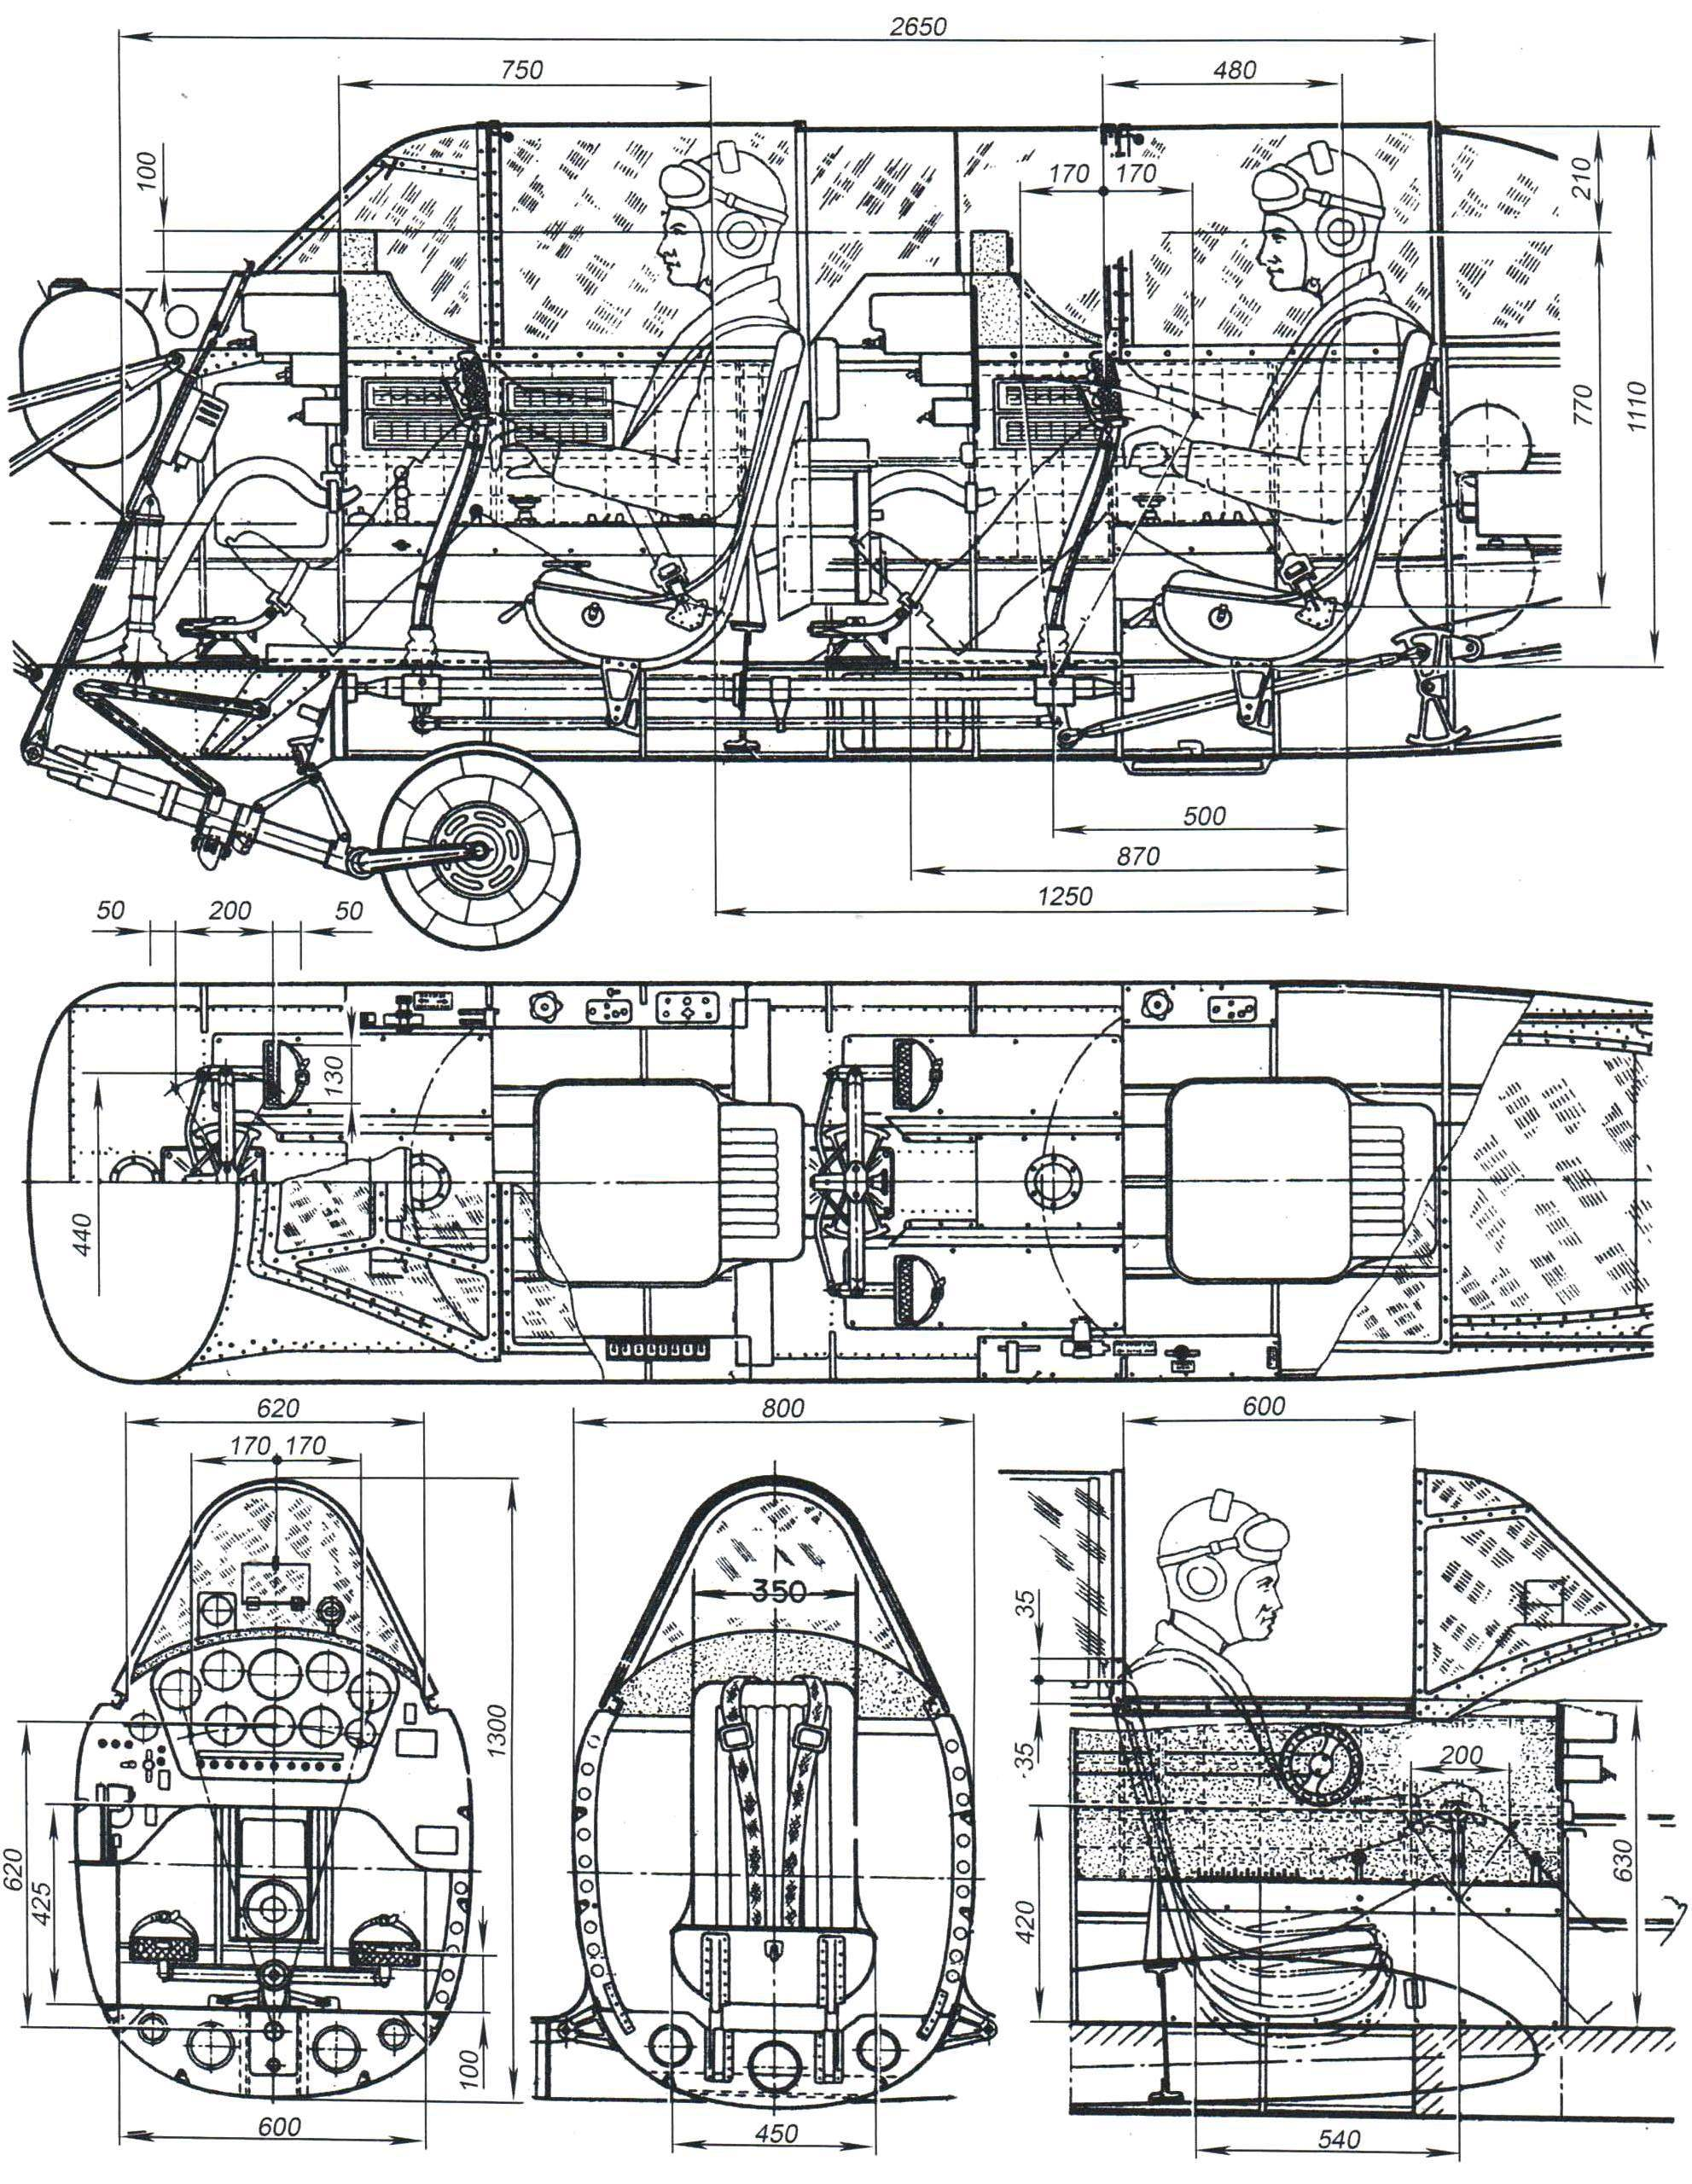 The layout of the cockpit of the Yak-52